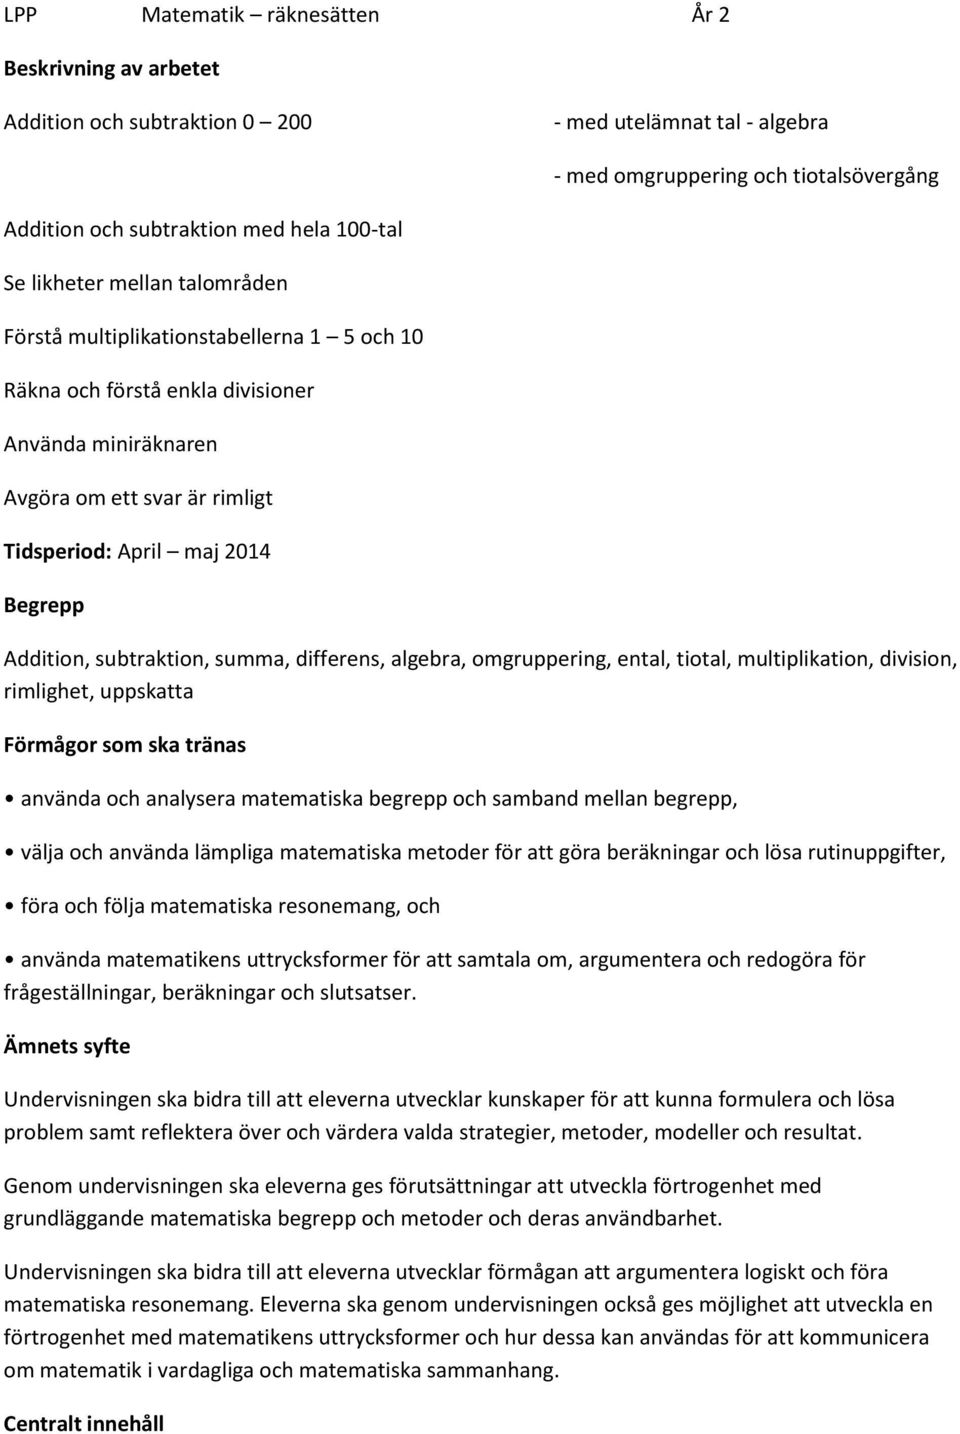 Addition, subtraktion, summa, differens, algebra, omgruppering, ental, tiotal, multiplikation, division, rimlighet, uppskatta Förmågor som ska tränas använda och analysera matematiska begrepp och